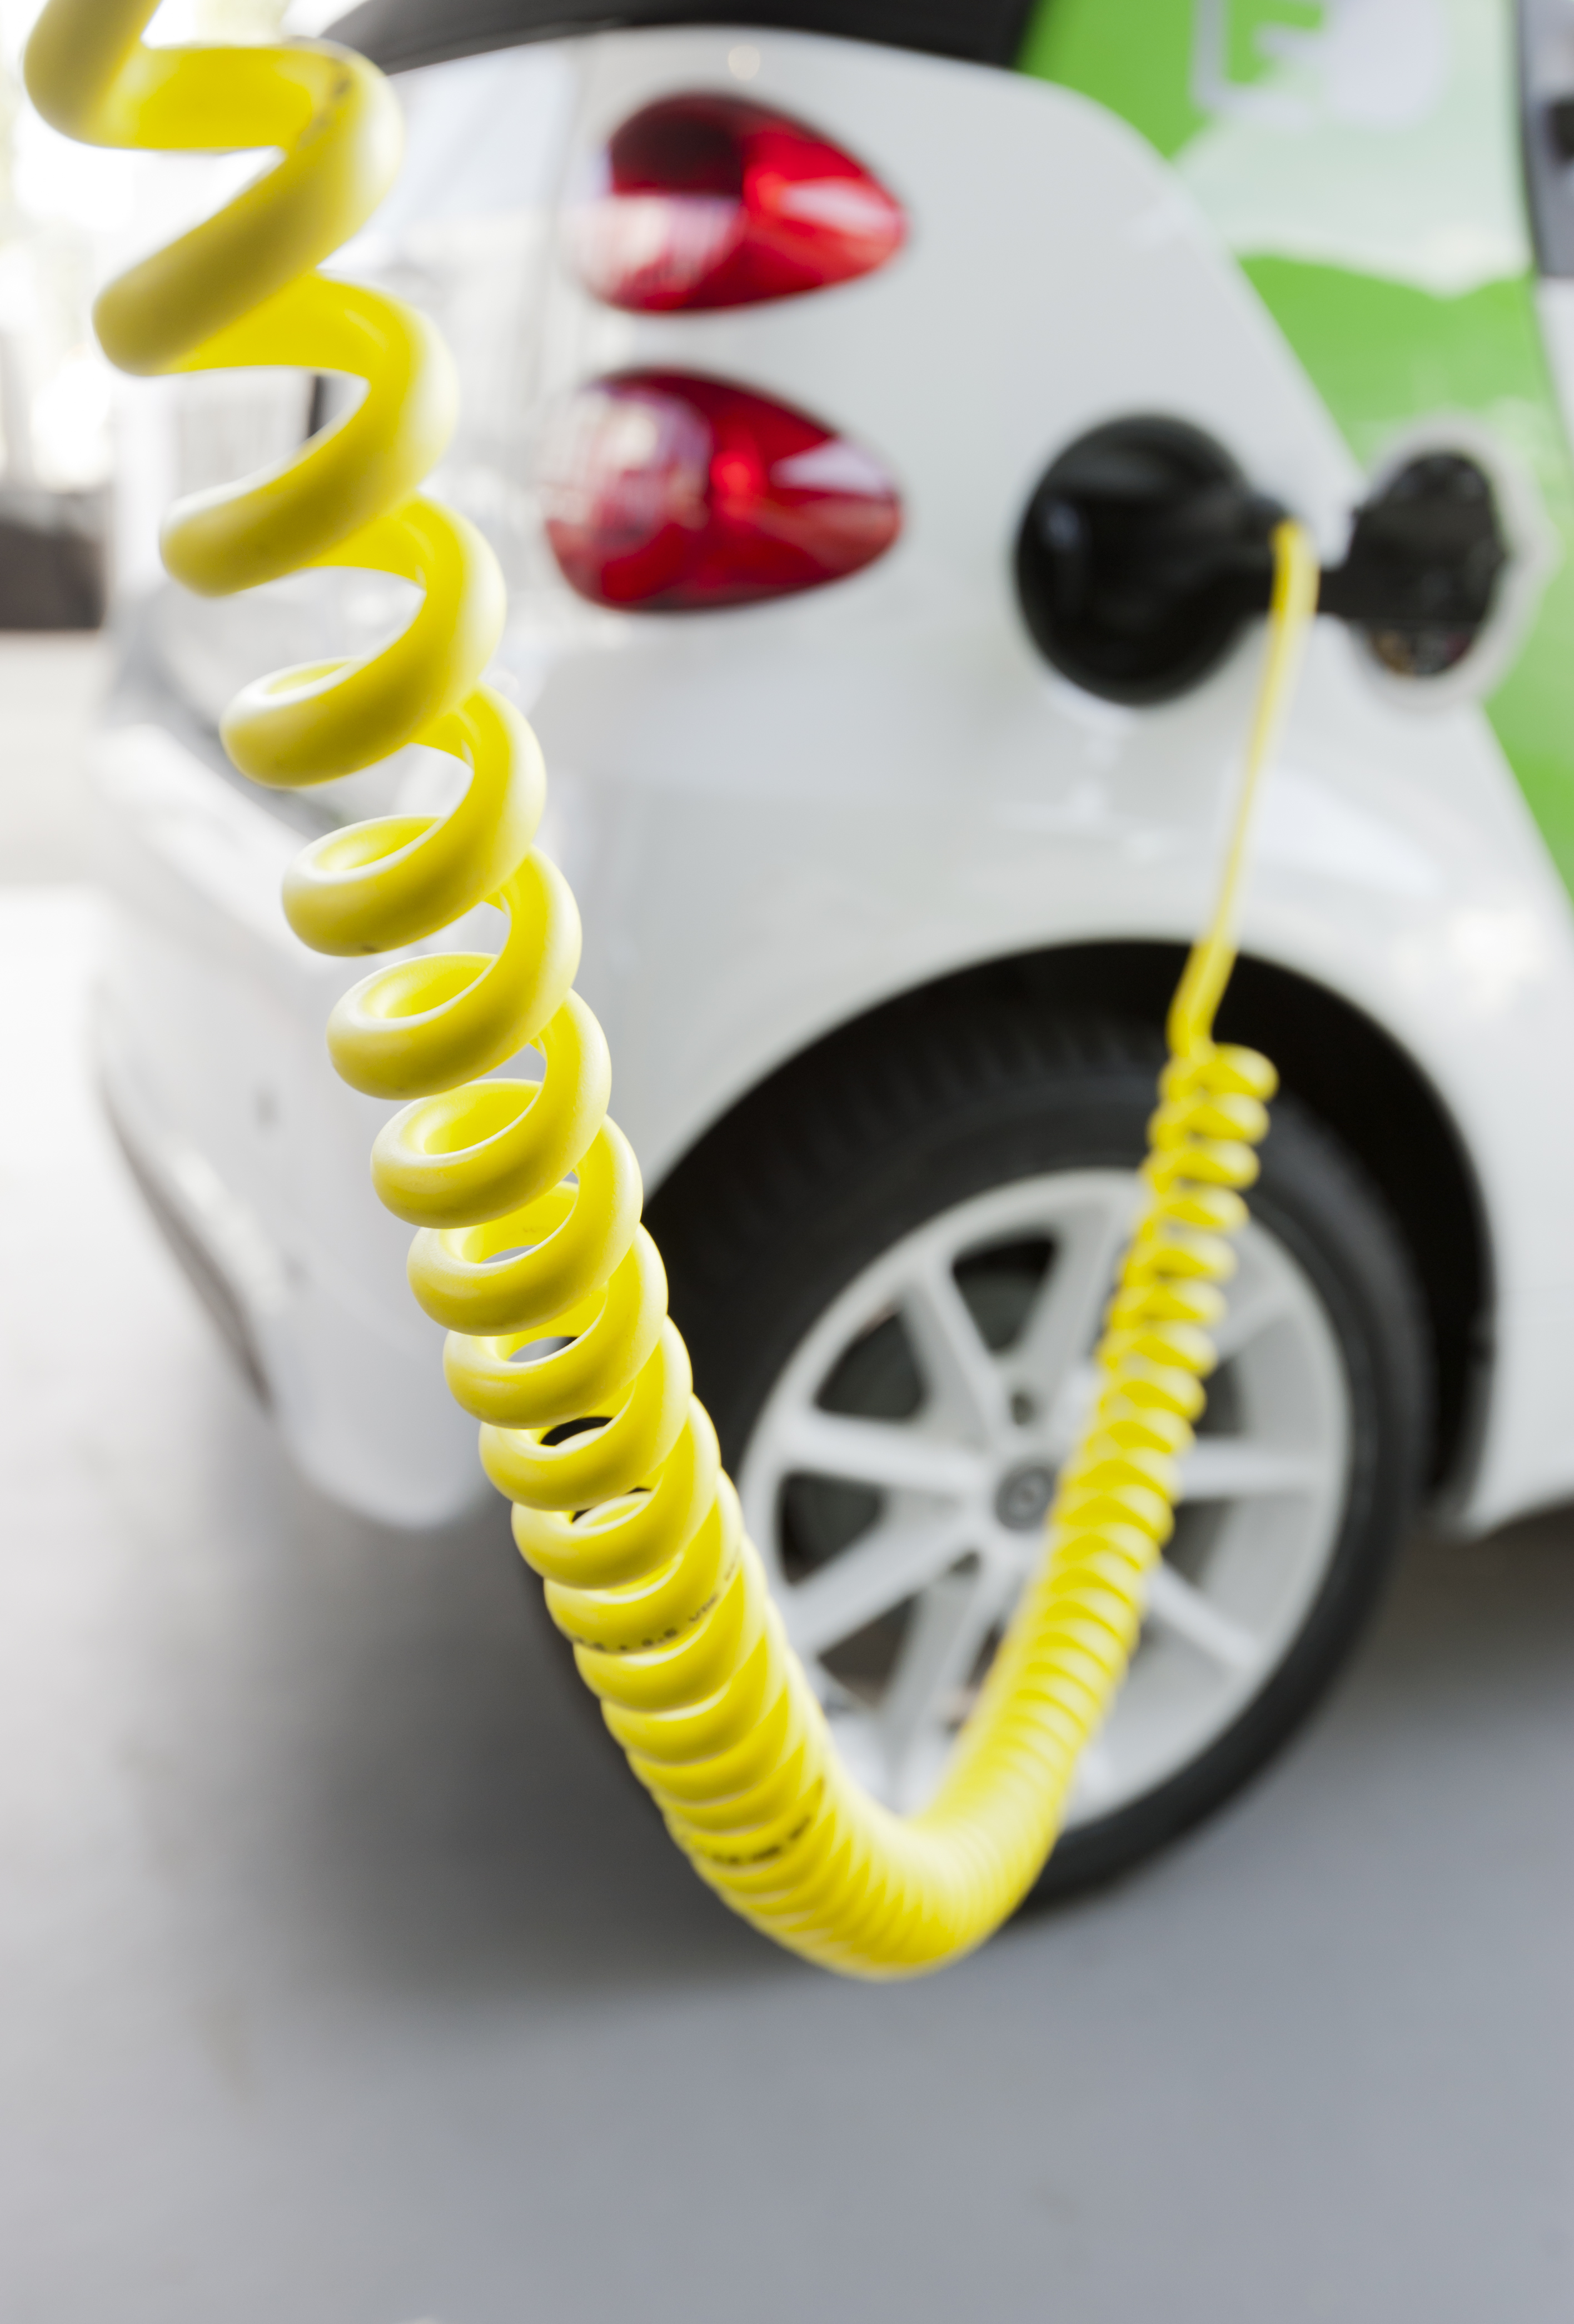 charging electric car with it's charger